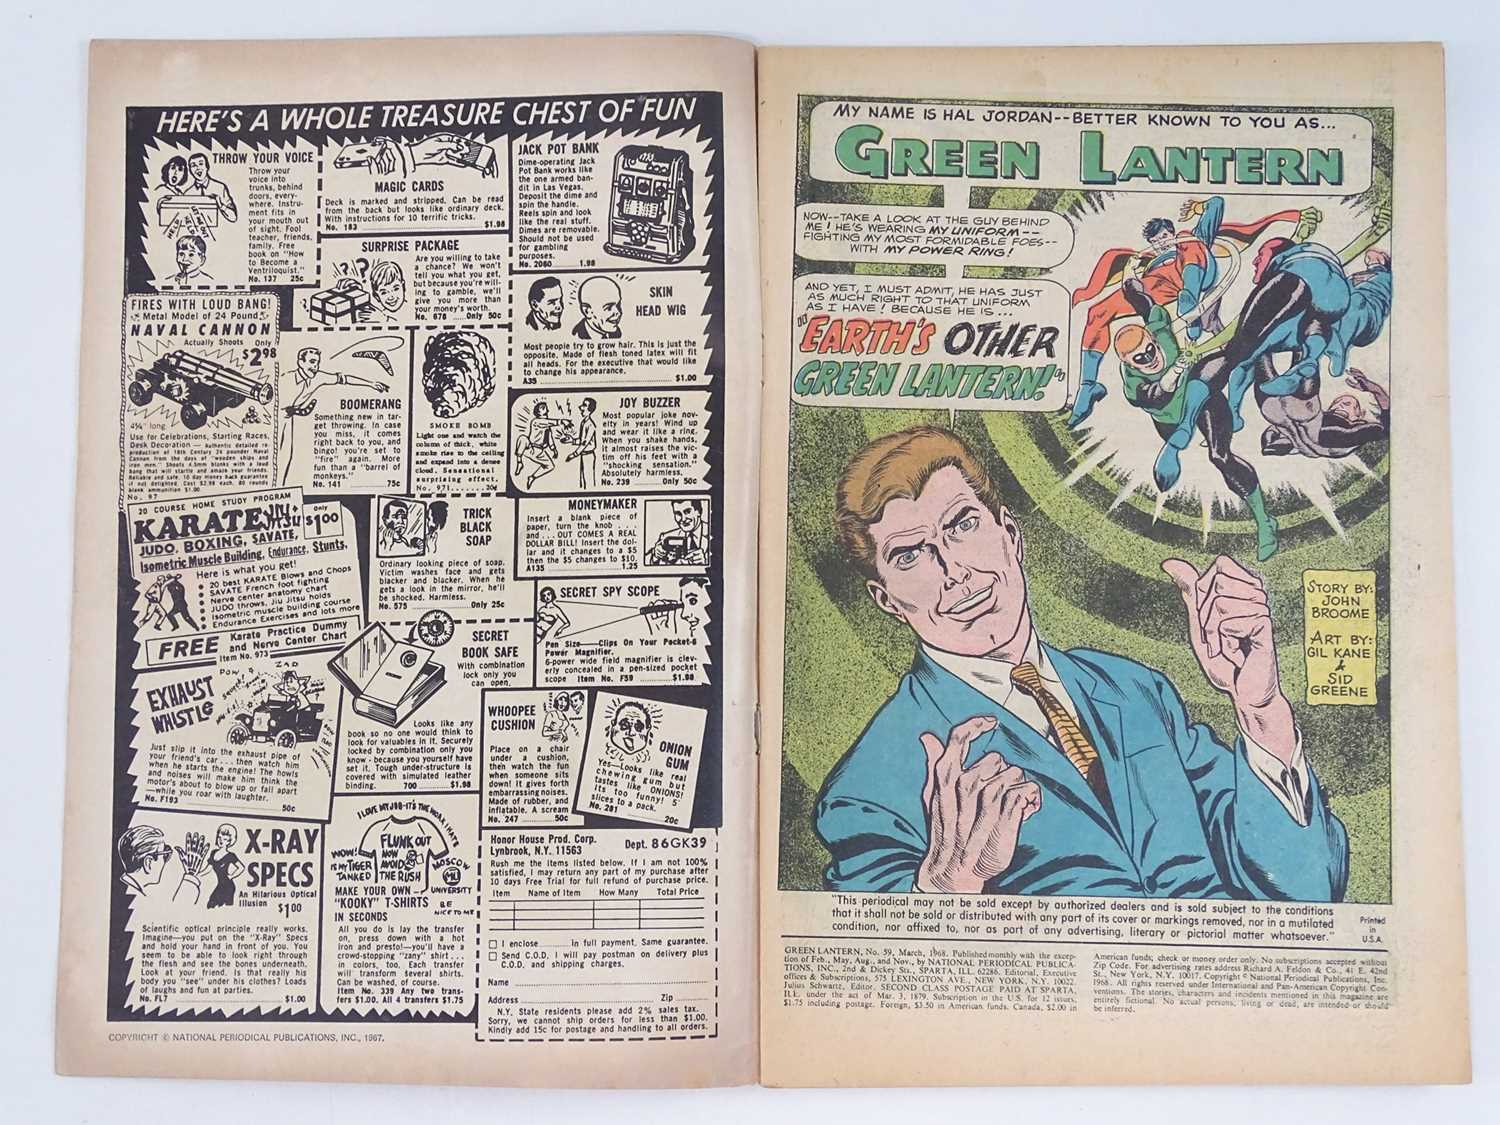 GREEN LANTERN #59 - (1968 - DC - UK Cover Price) - Classic DC Cover + KEY Book - First appearance of - Image 3 of 9